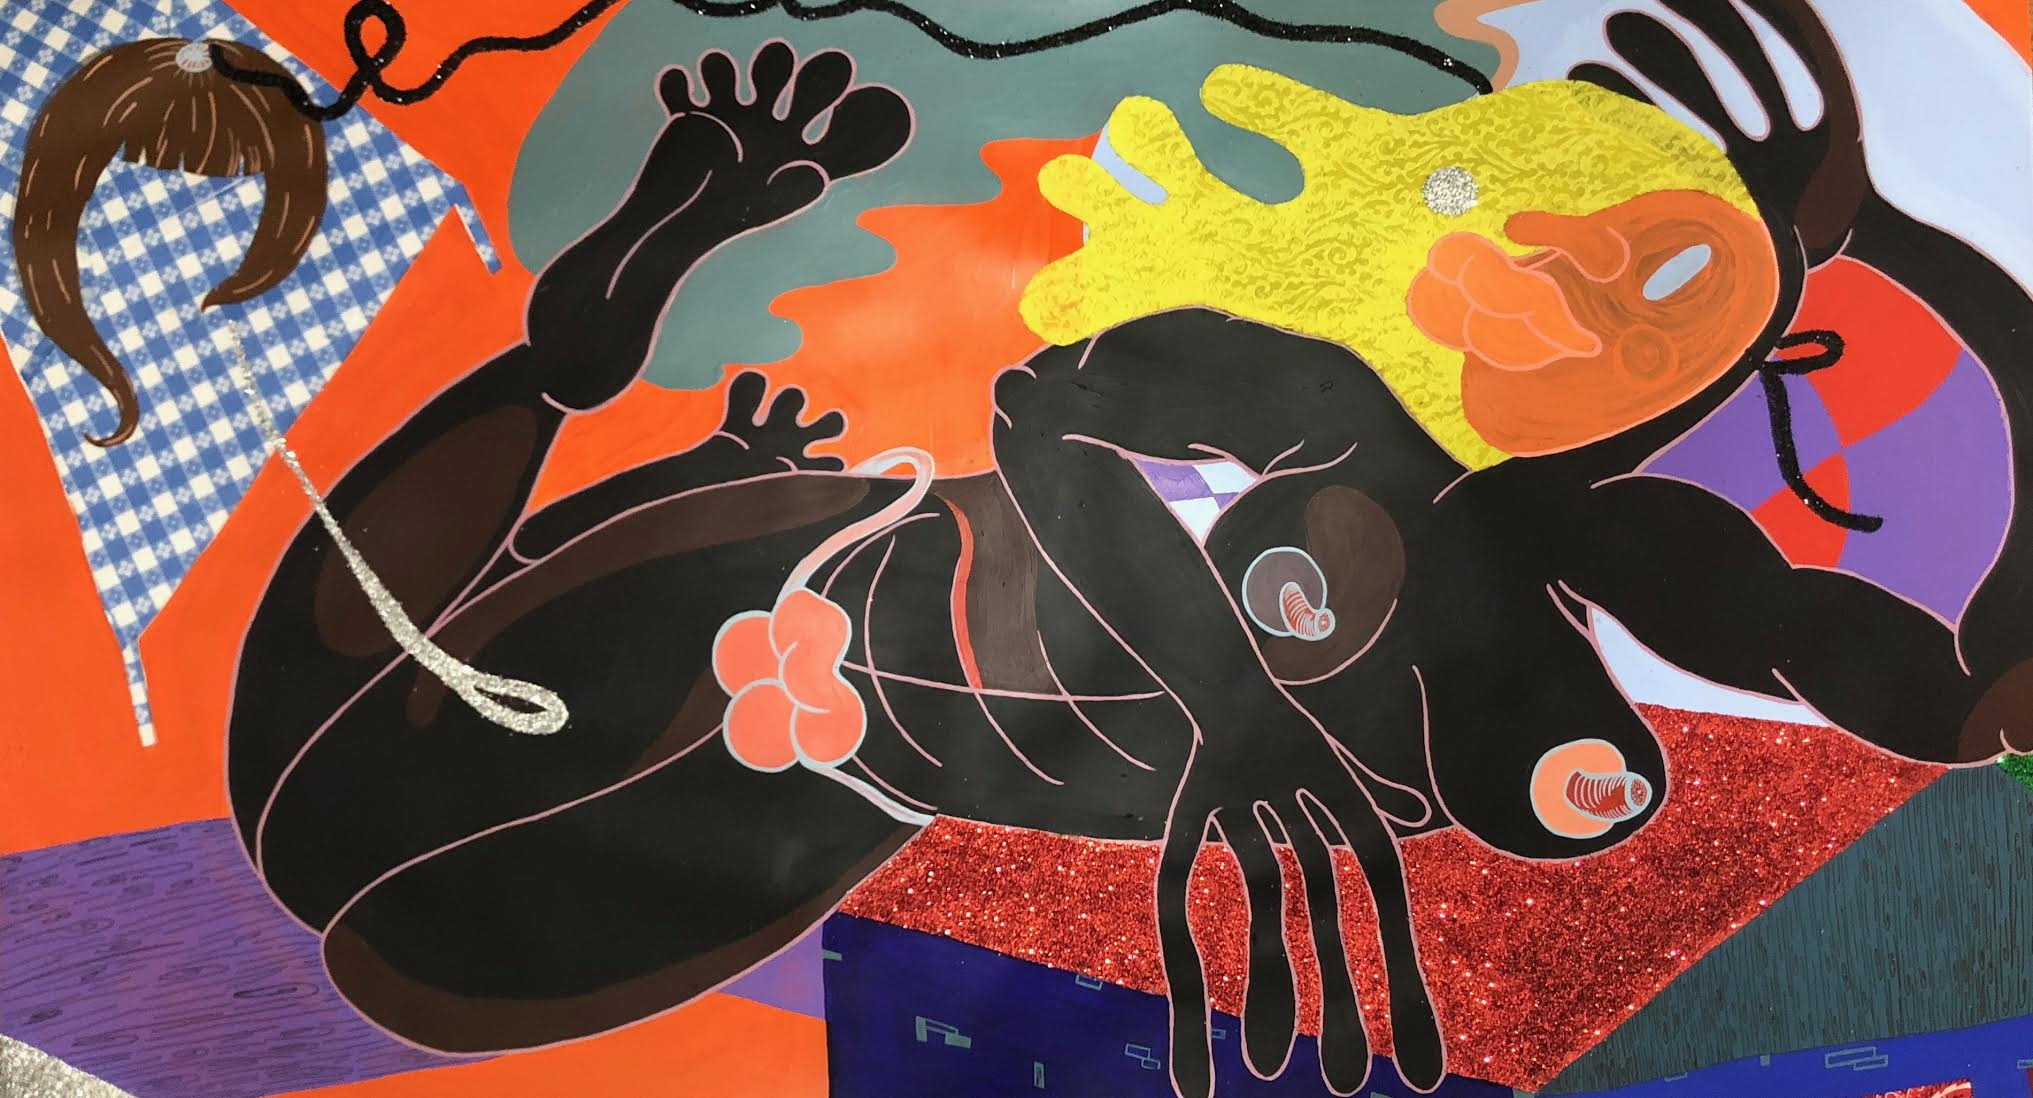 Reclining Woman (Wig Connection) / 2017 / Acrylic, glitter, vinyl and silk fabric collage on paper / 40 x 71 inches